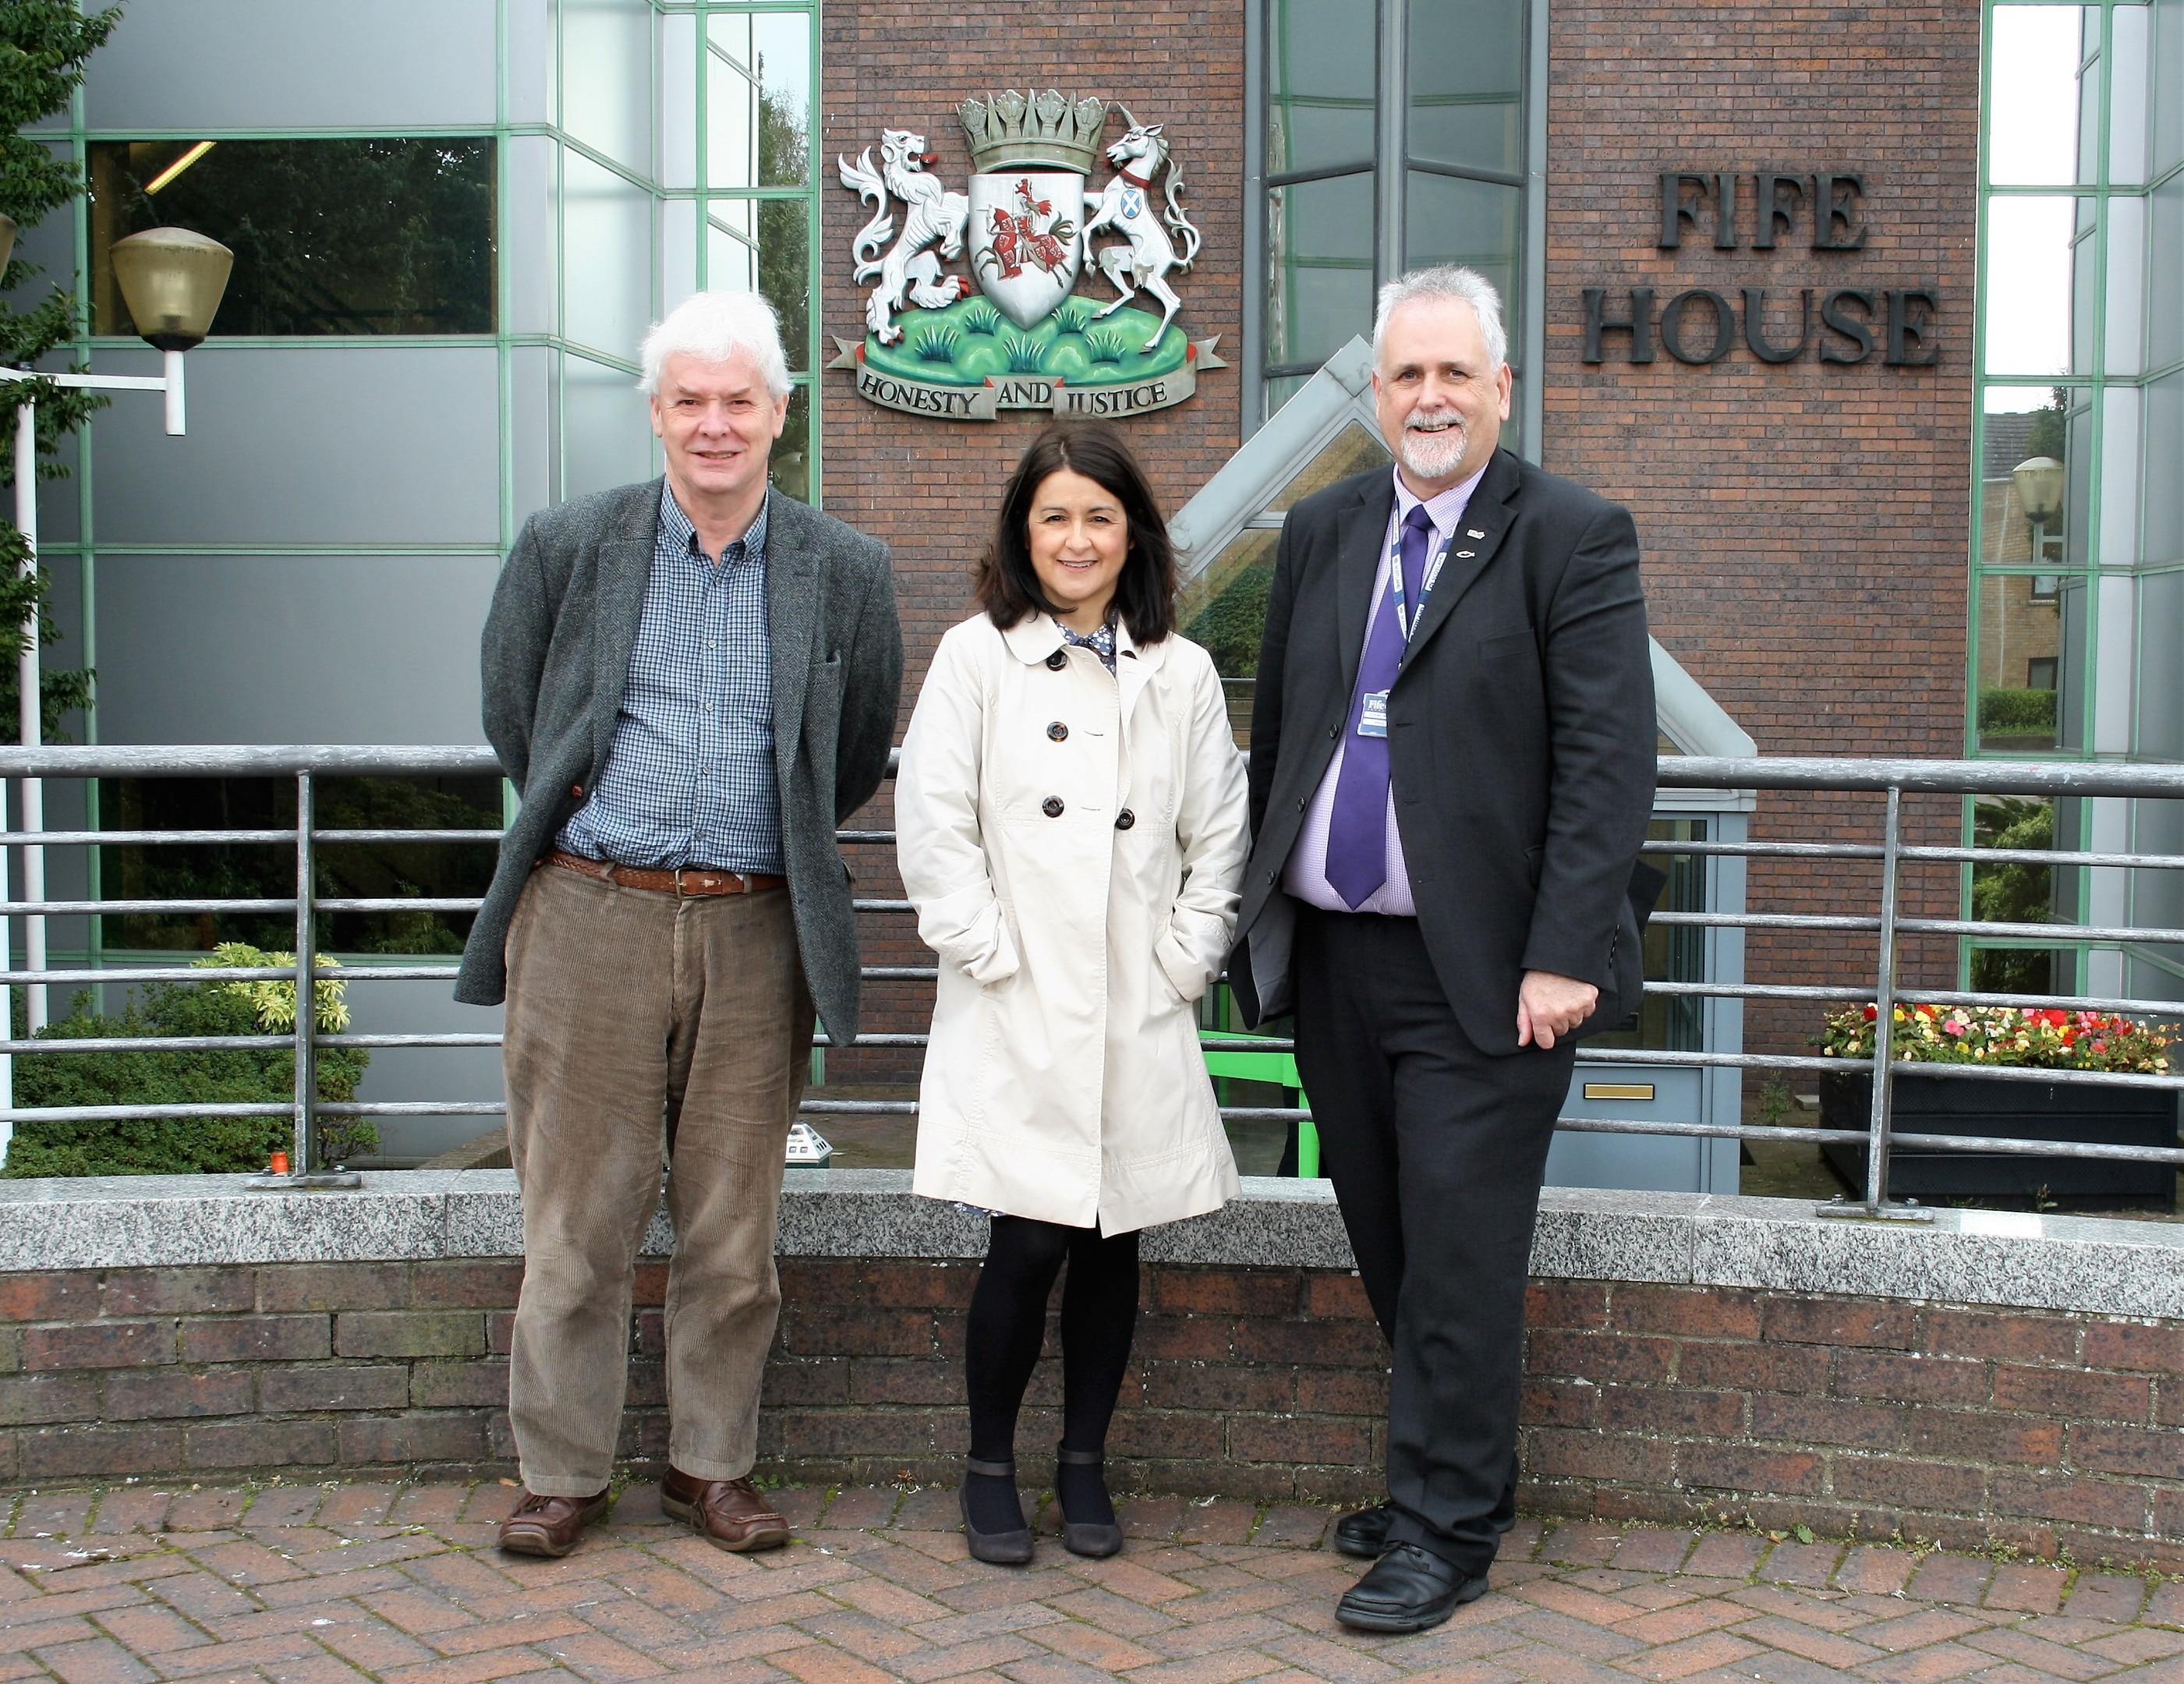 (L-r) Councillors Poole, Penman and Brown want to see the end of party politics at Fife House.